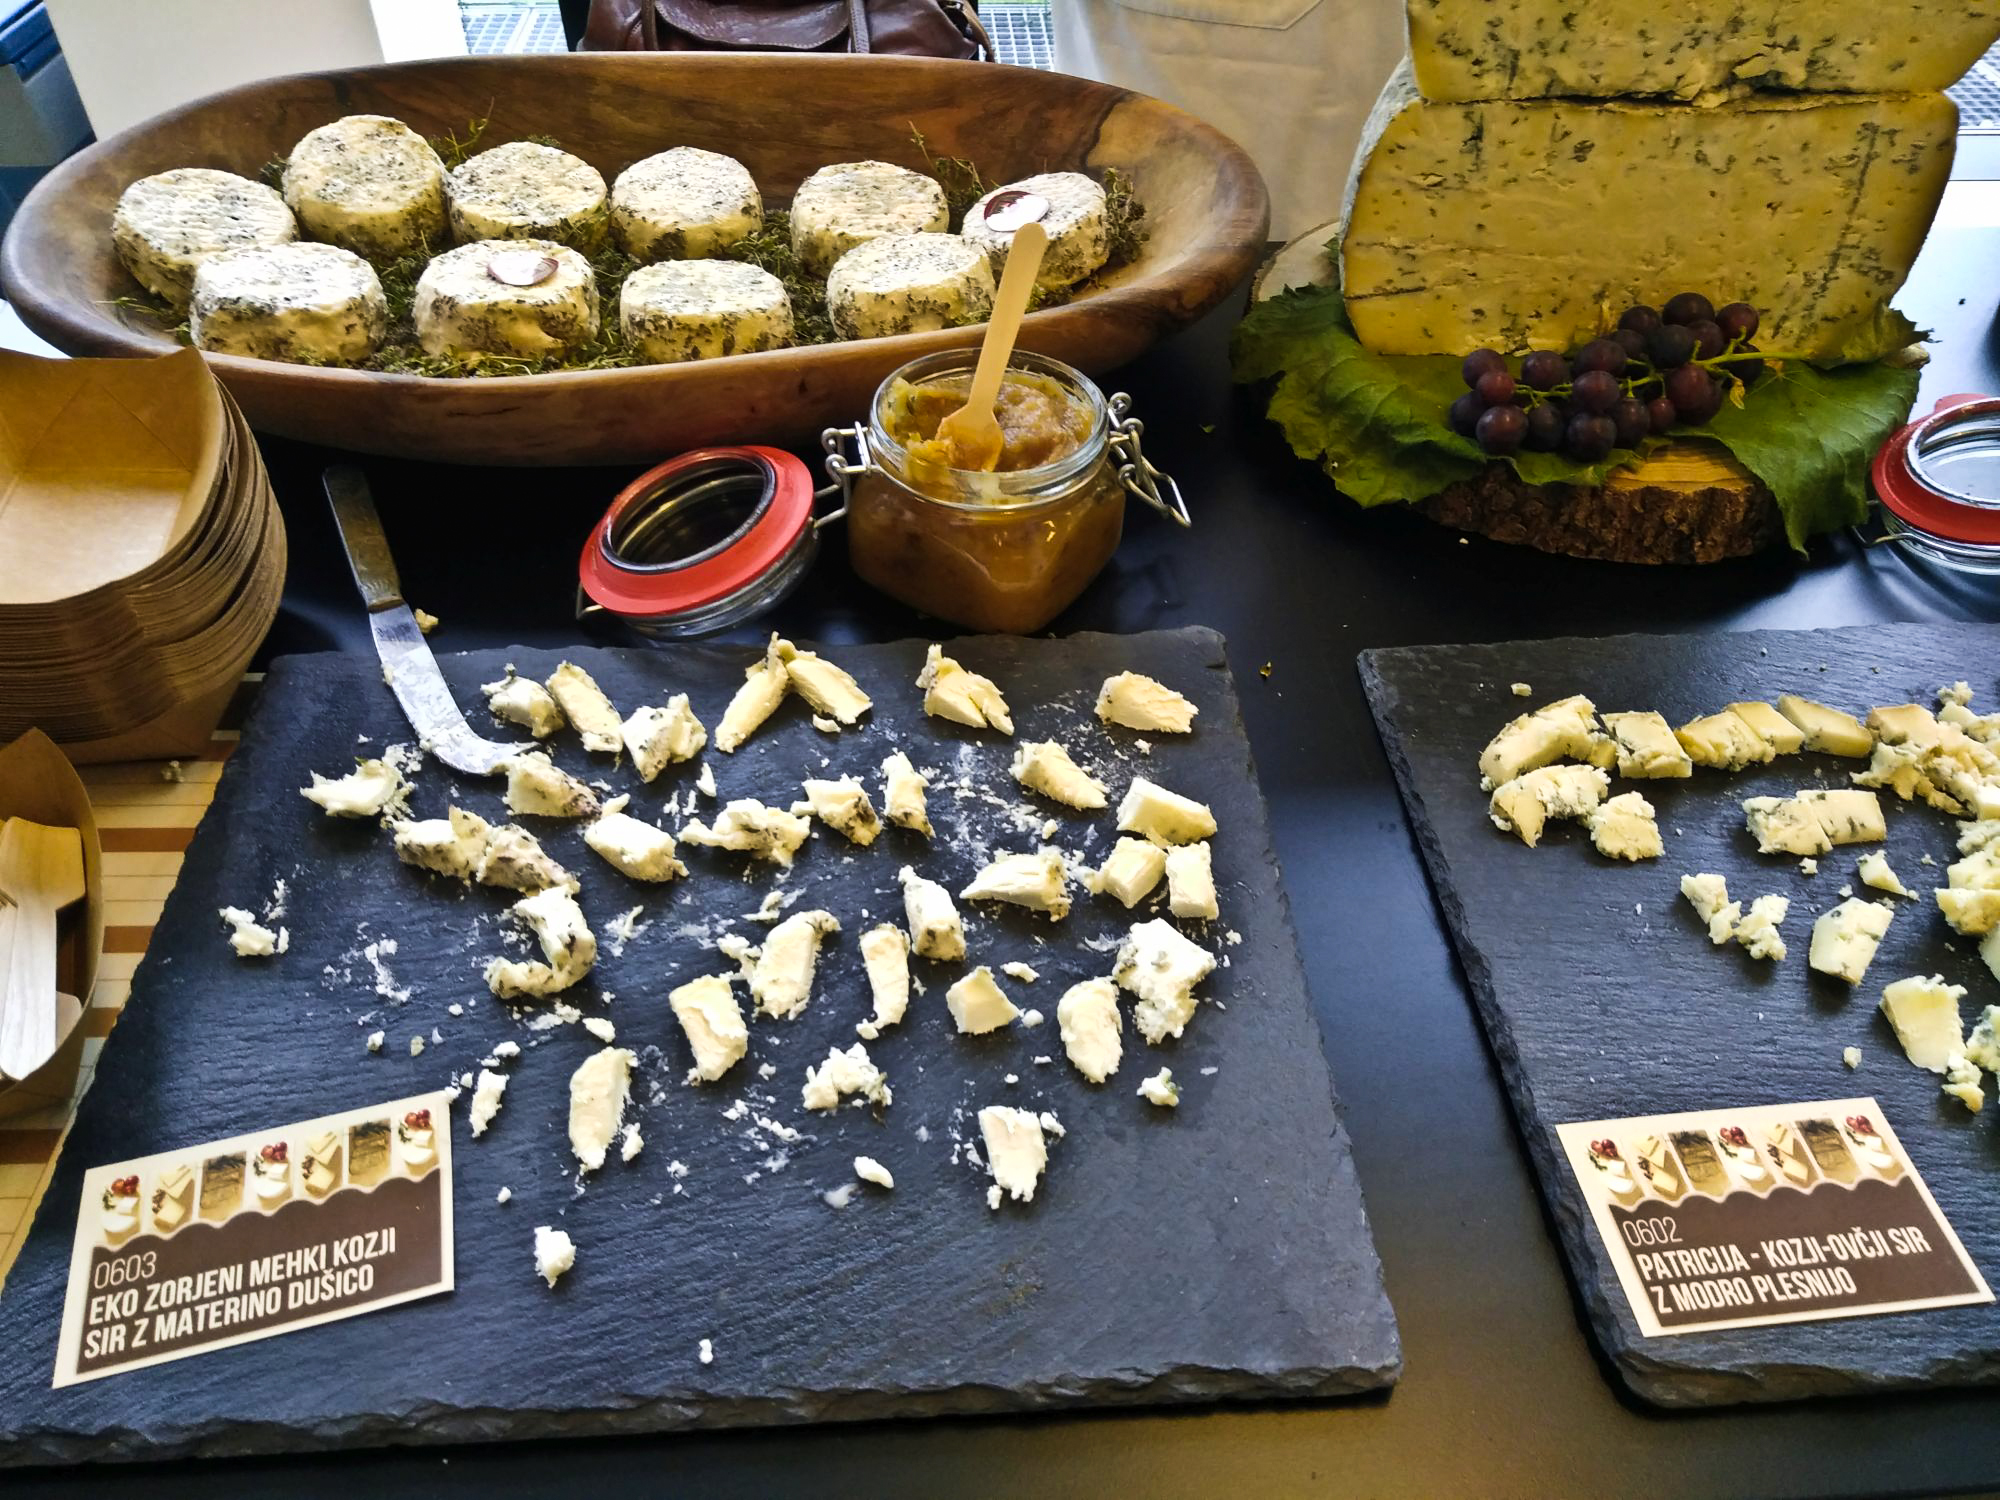 Cheese farm Sirarstvo Orešnik's eco-ripened soft goat cheese with thyme, and goat and sheep cheese with blue mould